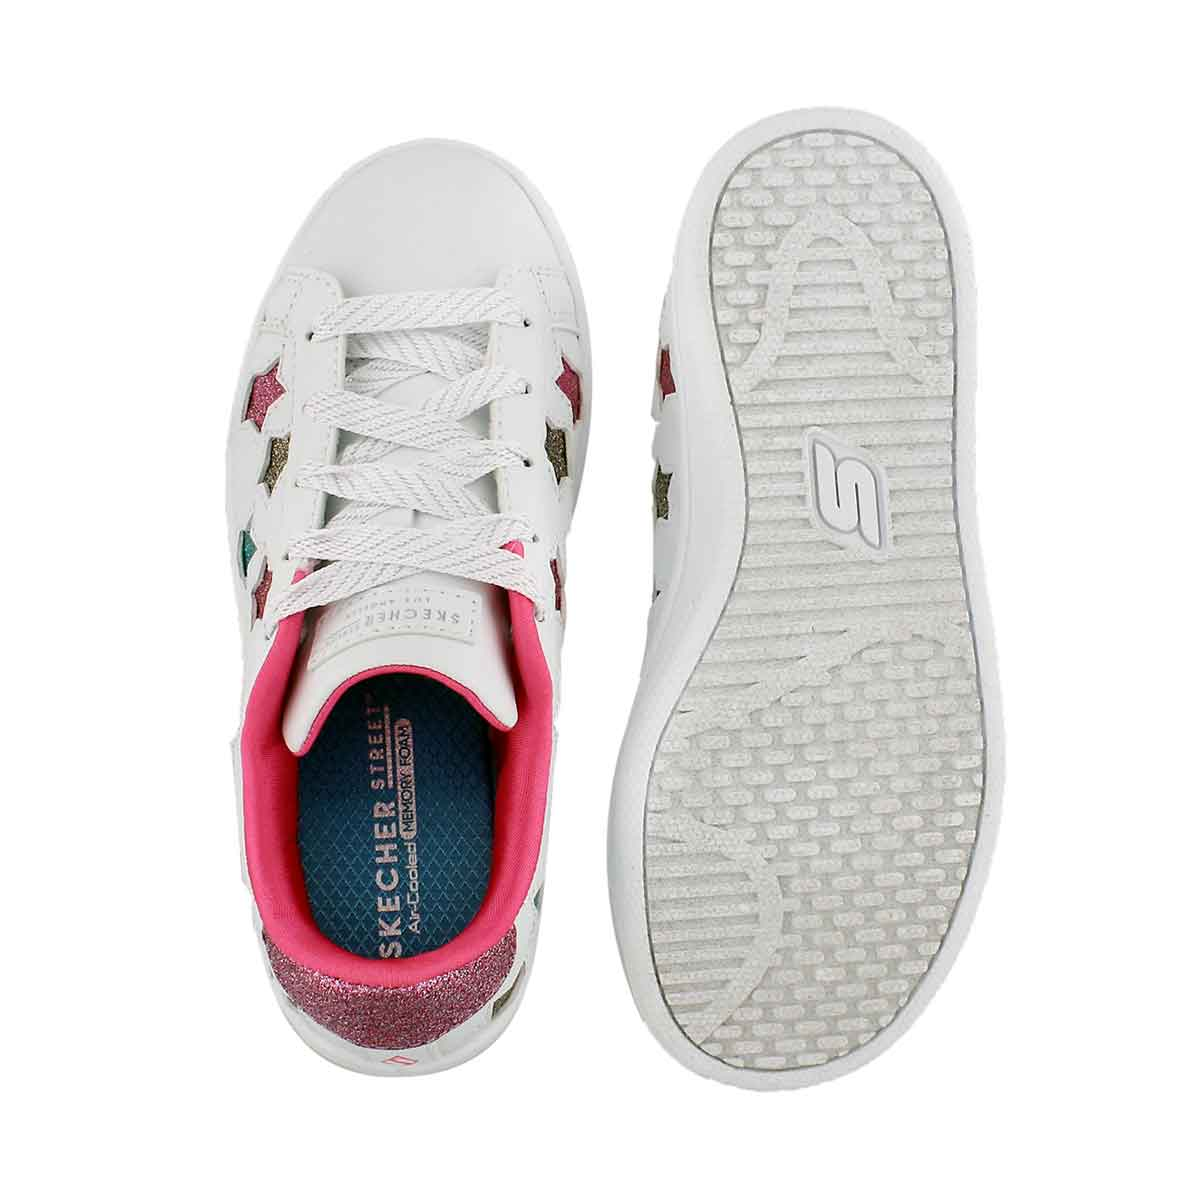 Grls Omne wht/mlti lace up sneaker